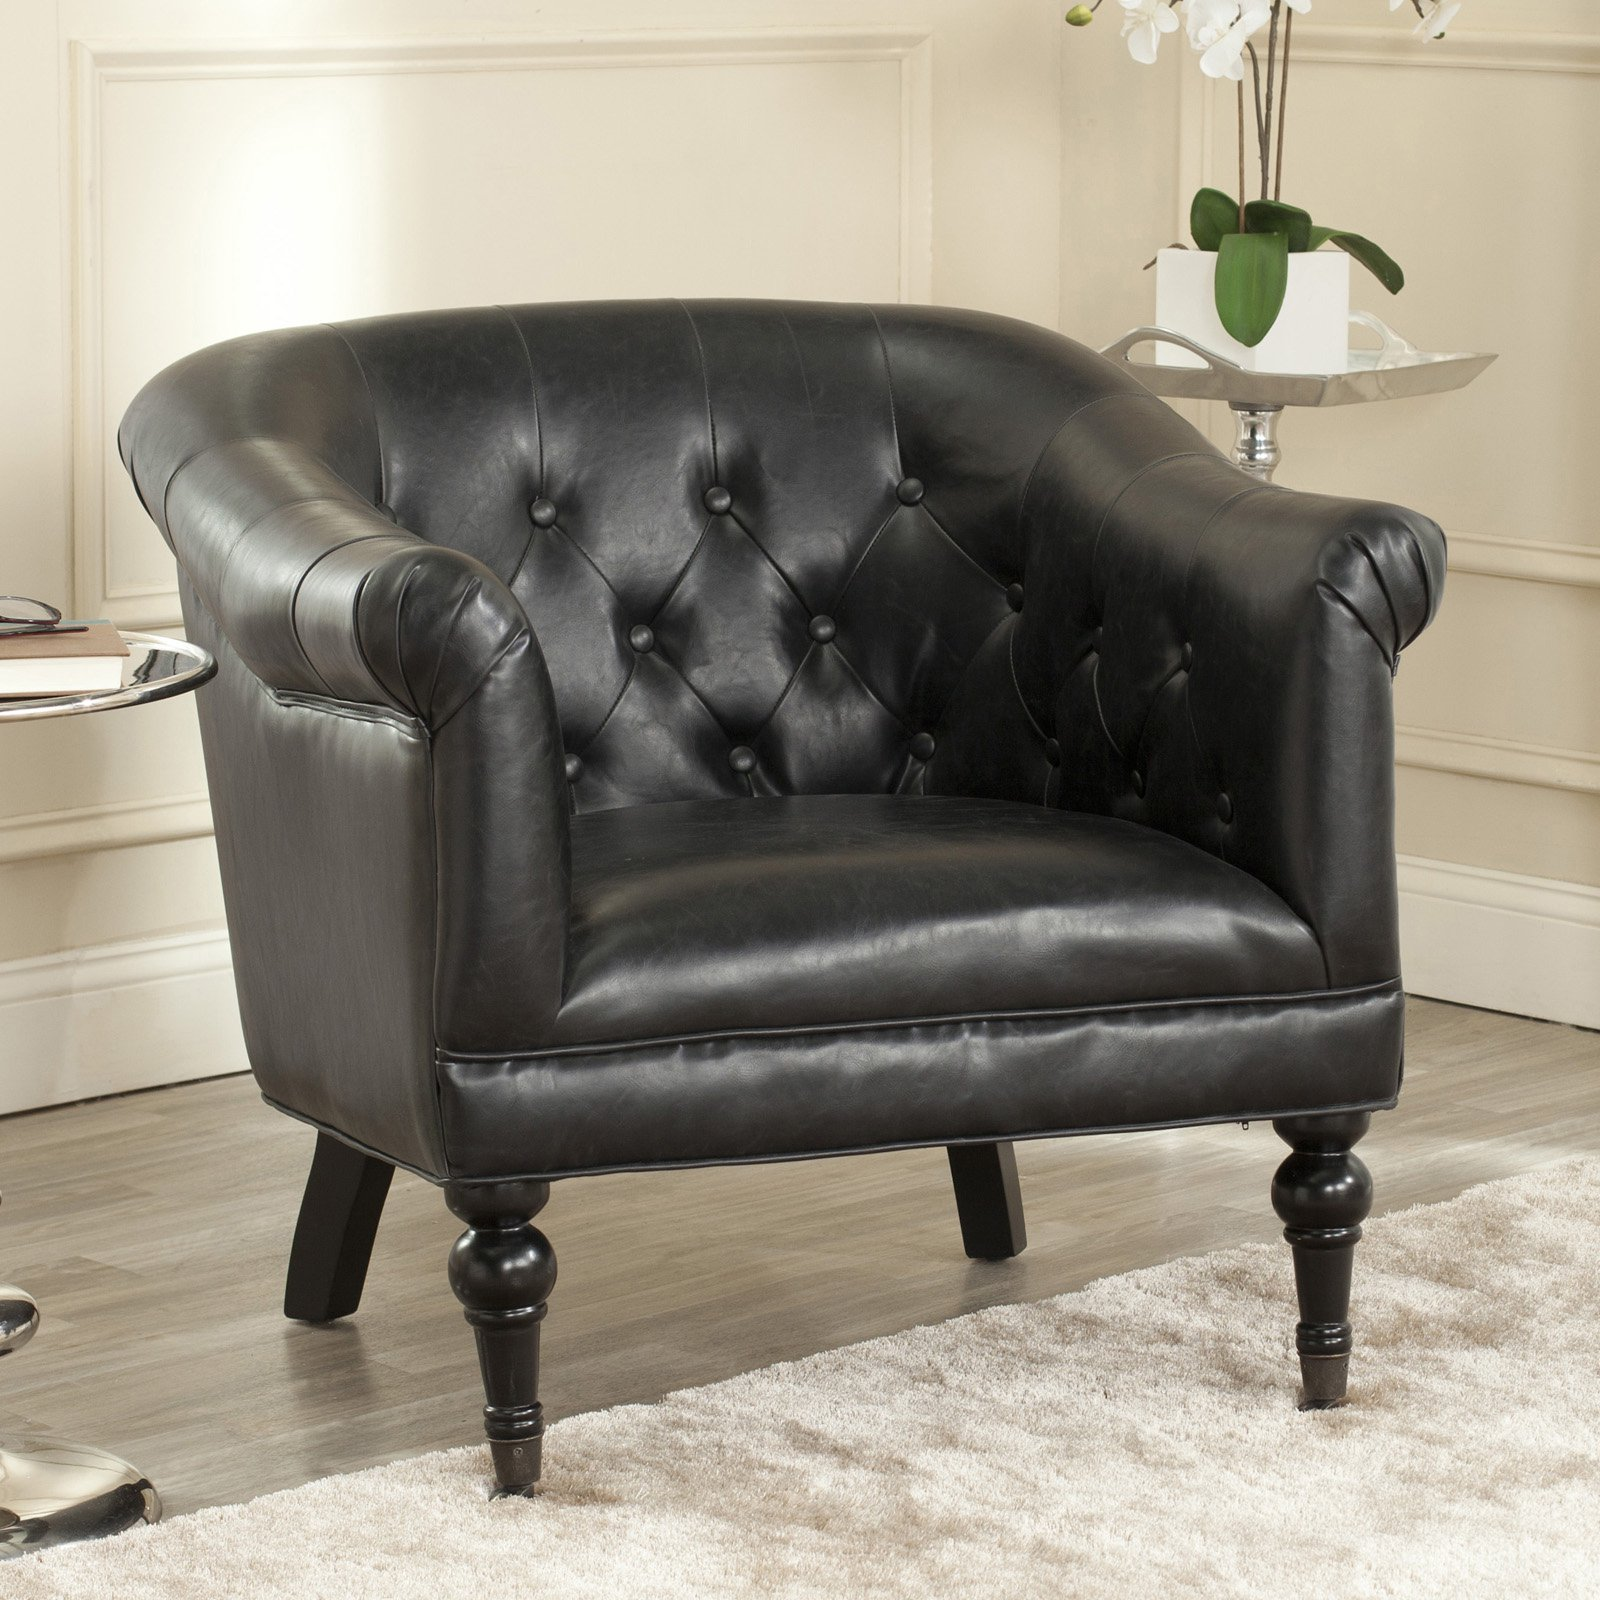 Safavieh Nicolas Tufted Club Chair